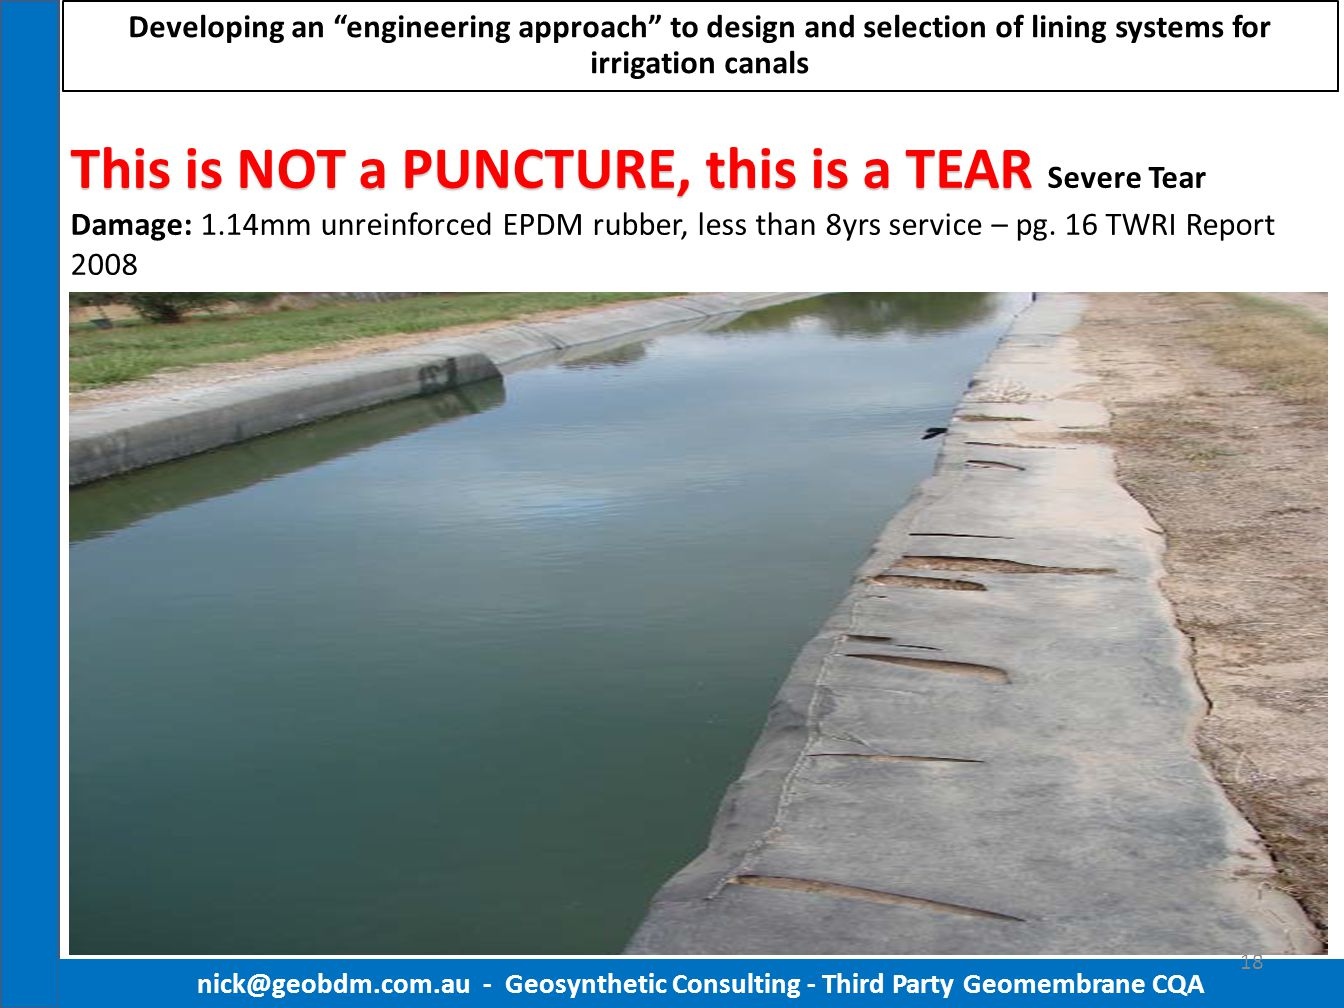 nick@geobdm.com.au - Geosynthetic Consulting - Third Party Geomembrane CQA 18 This is NOT a PUNCTURE, this is a TEAR This is NOT a PUNCTURE, this is a